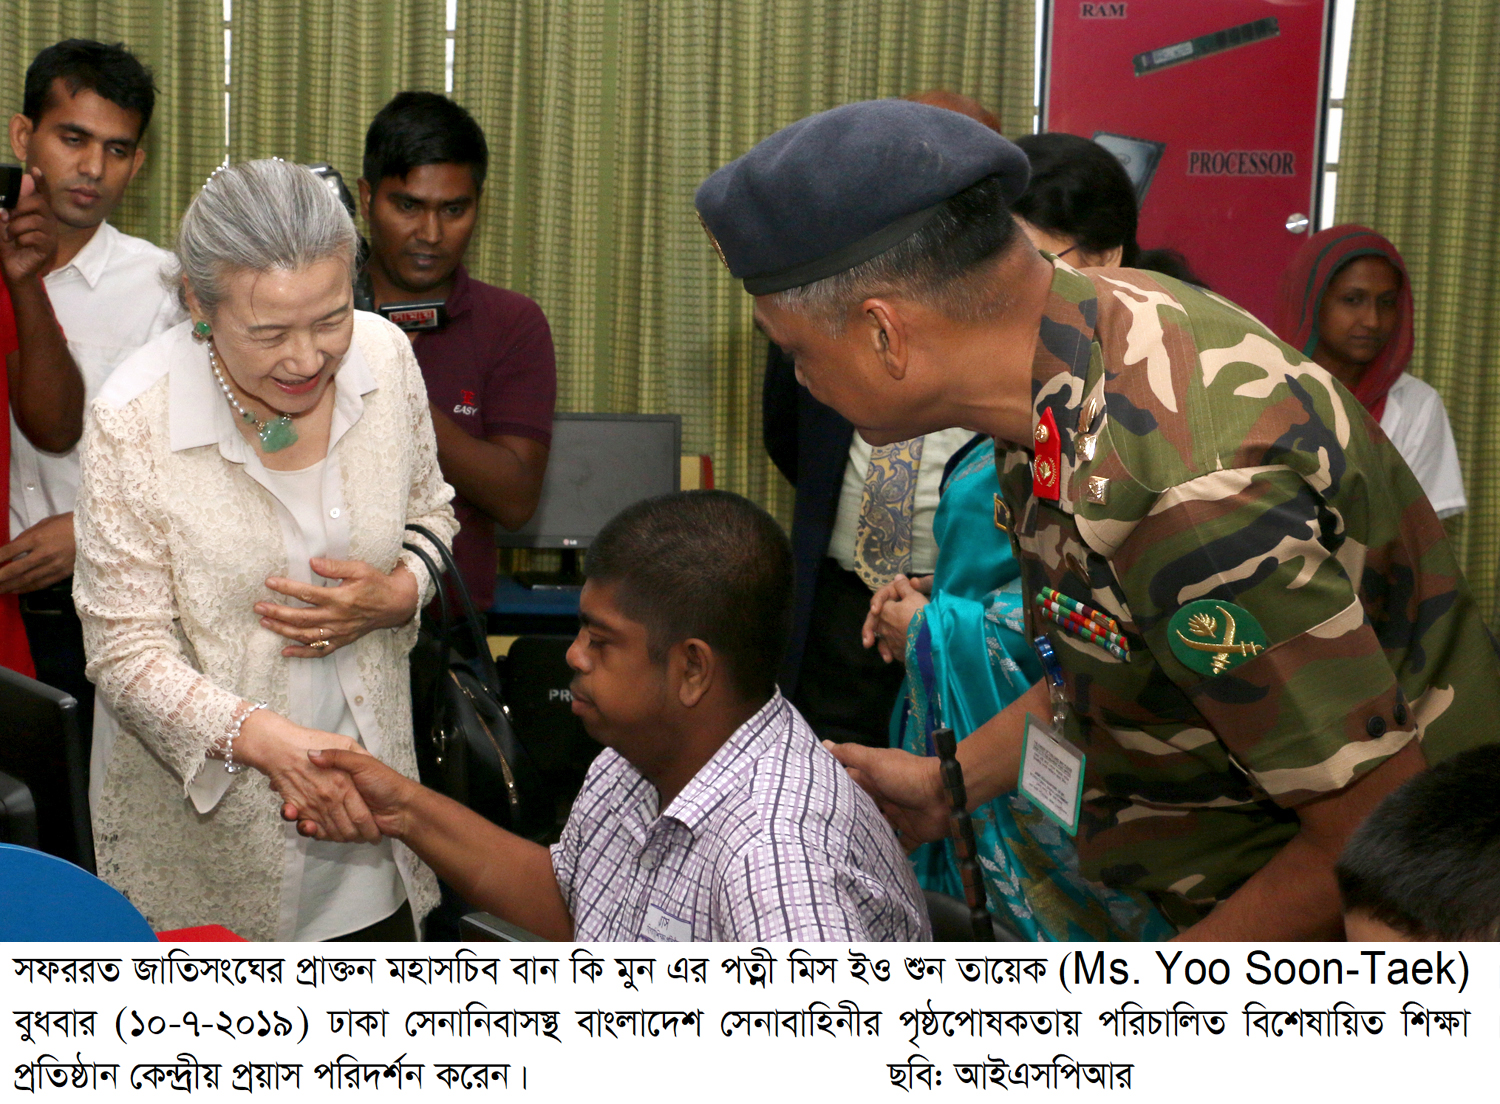 MRS BAN KI MOON WIFE OF FORMER UN SECY GENERAL Ban Ki Moon VISITS PROASH, SPECIALIZED SCHOOL RUN BY BANGLADESH ARMY